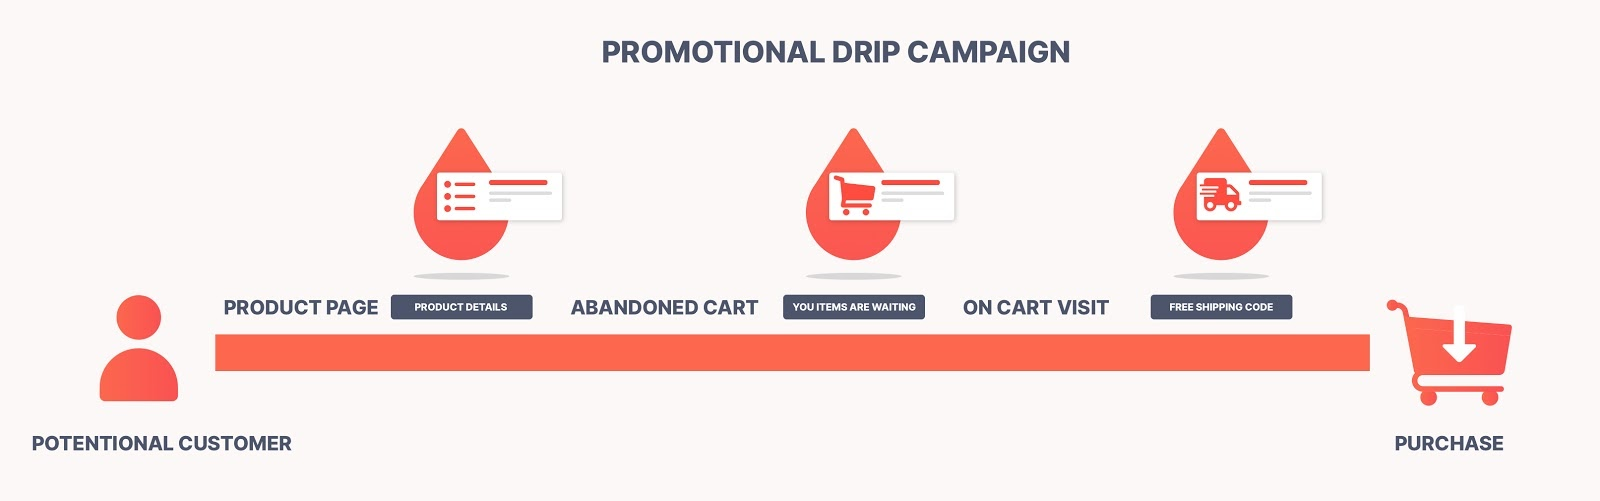 Promotional drip campaign illustration